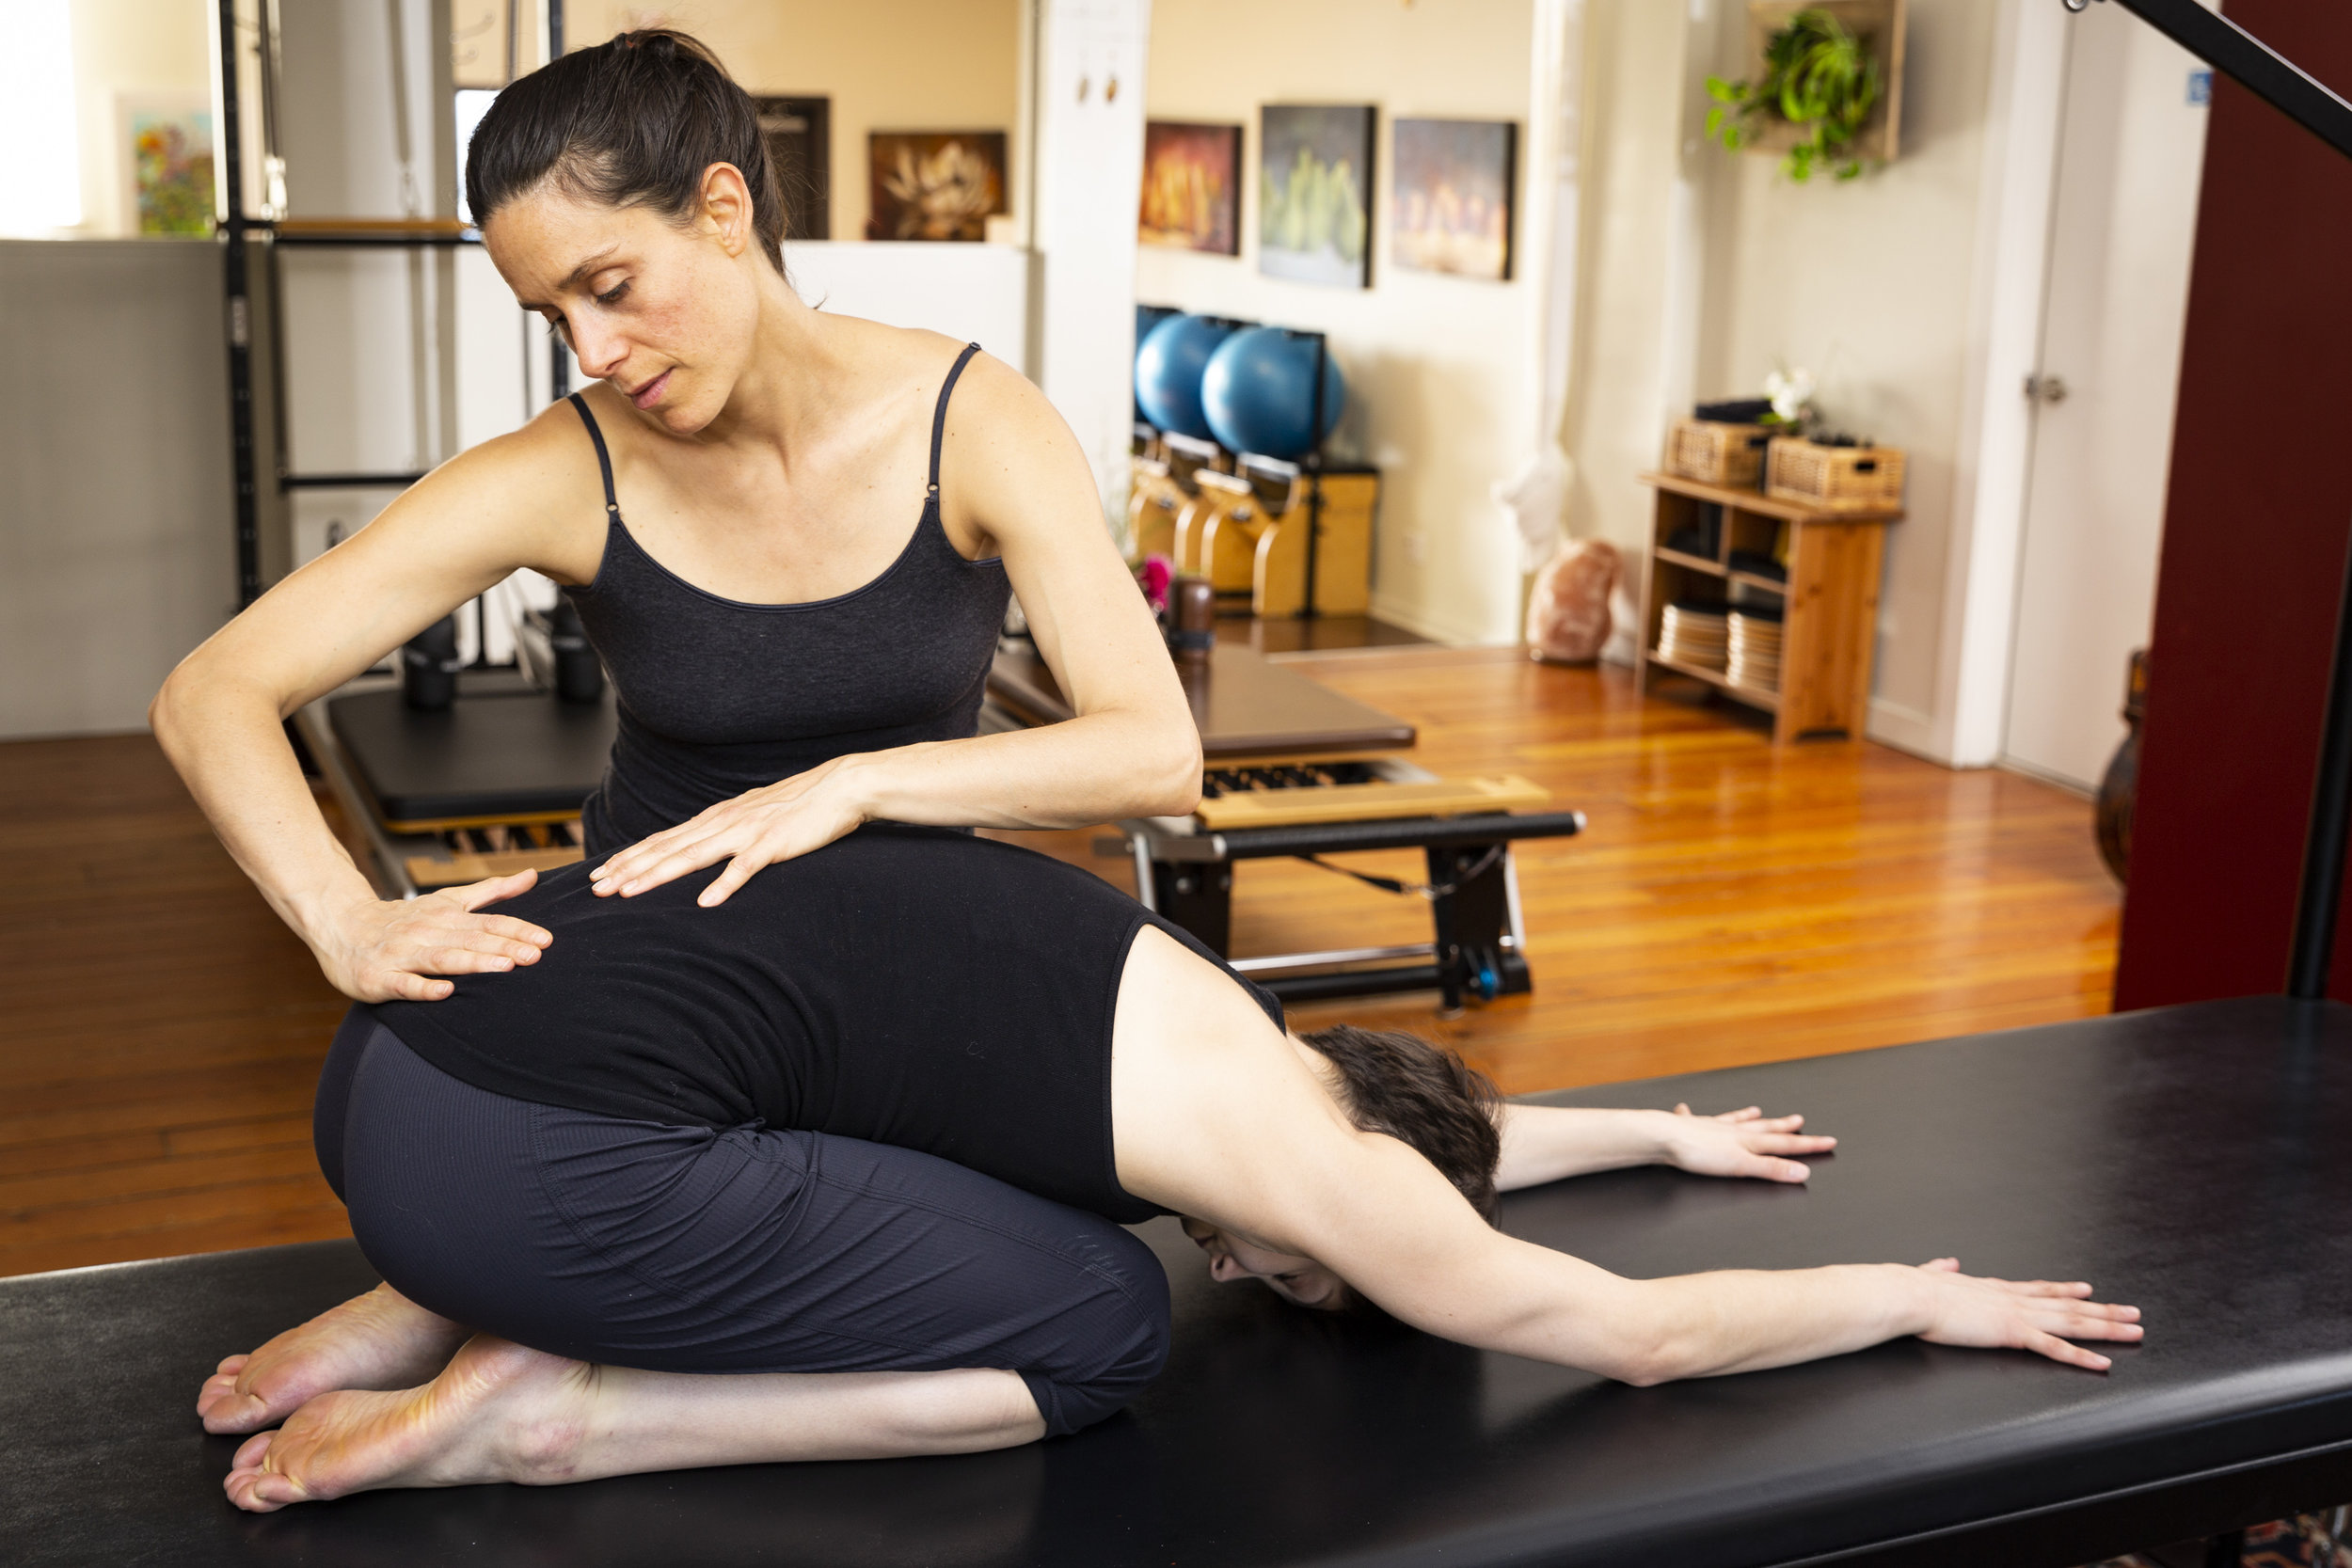 FullCircleStudio-VancouverPilates-Darcy McMurray-Private Session-May 2019 .jpg